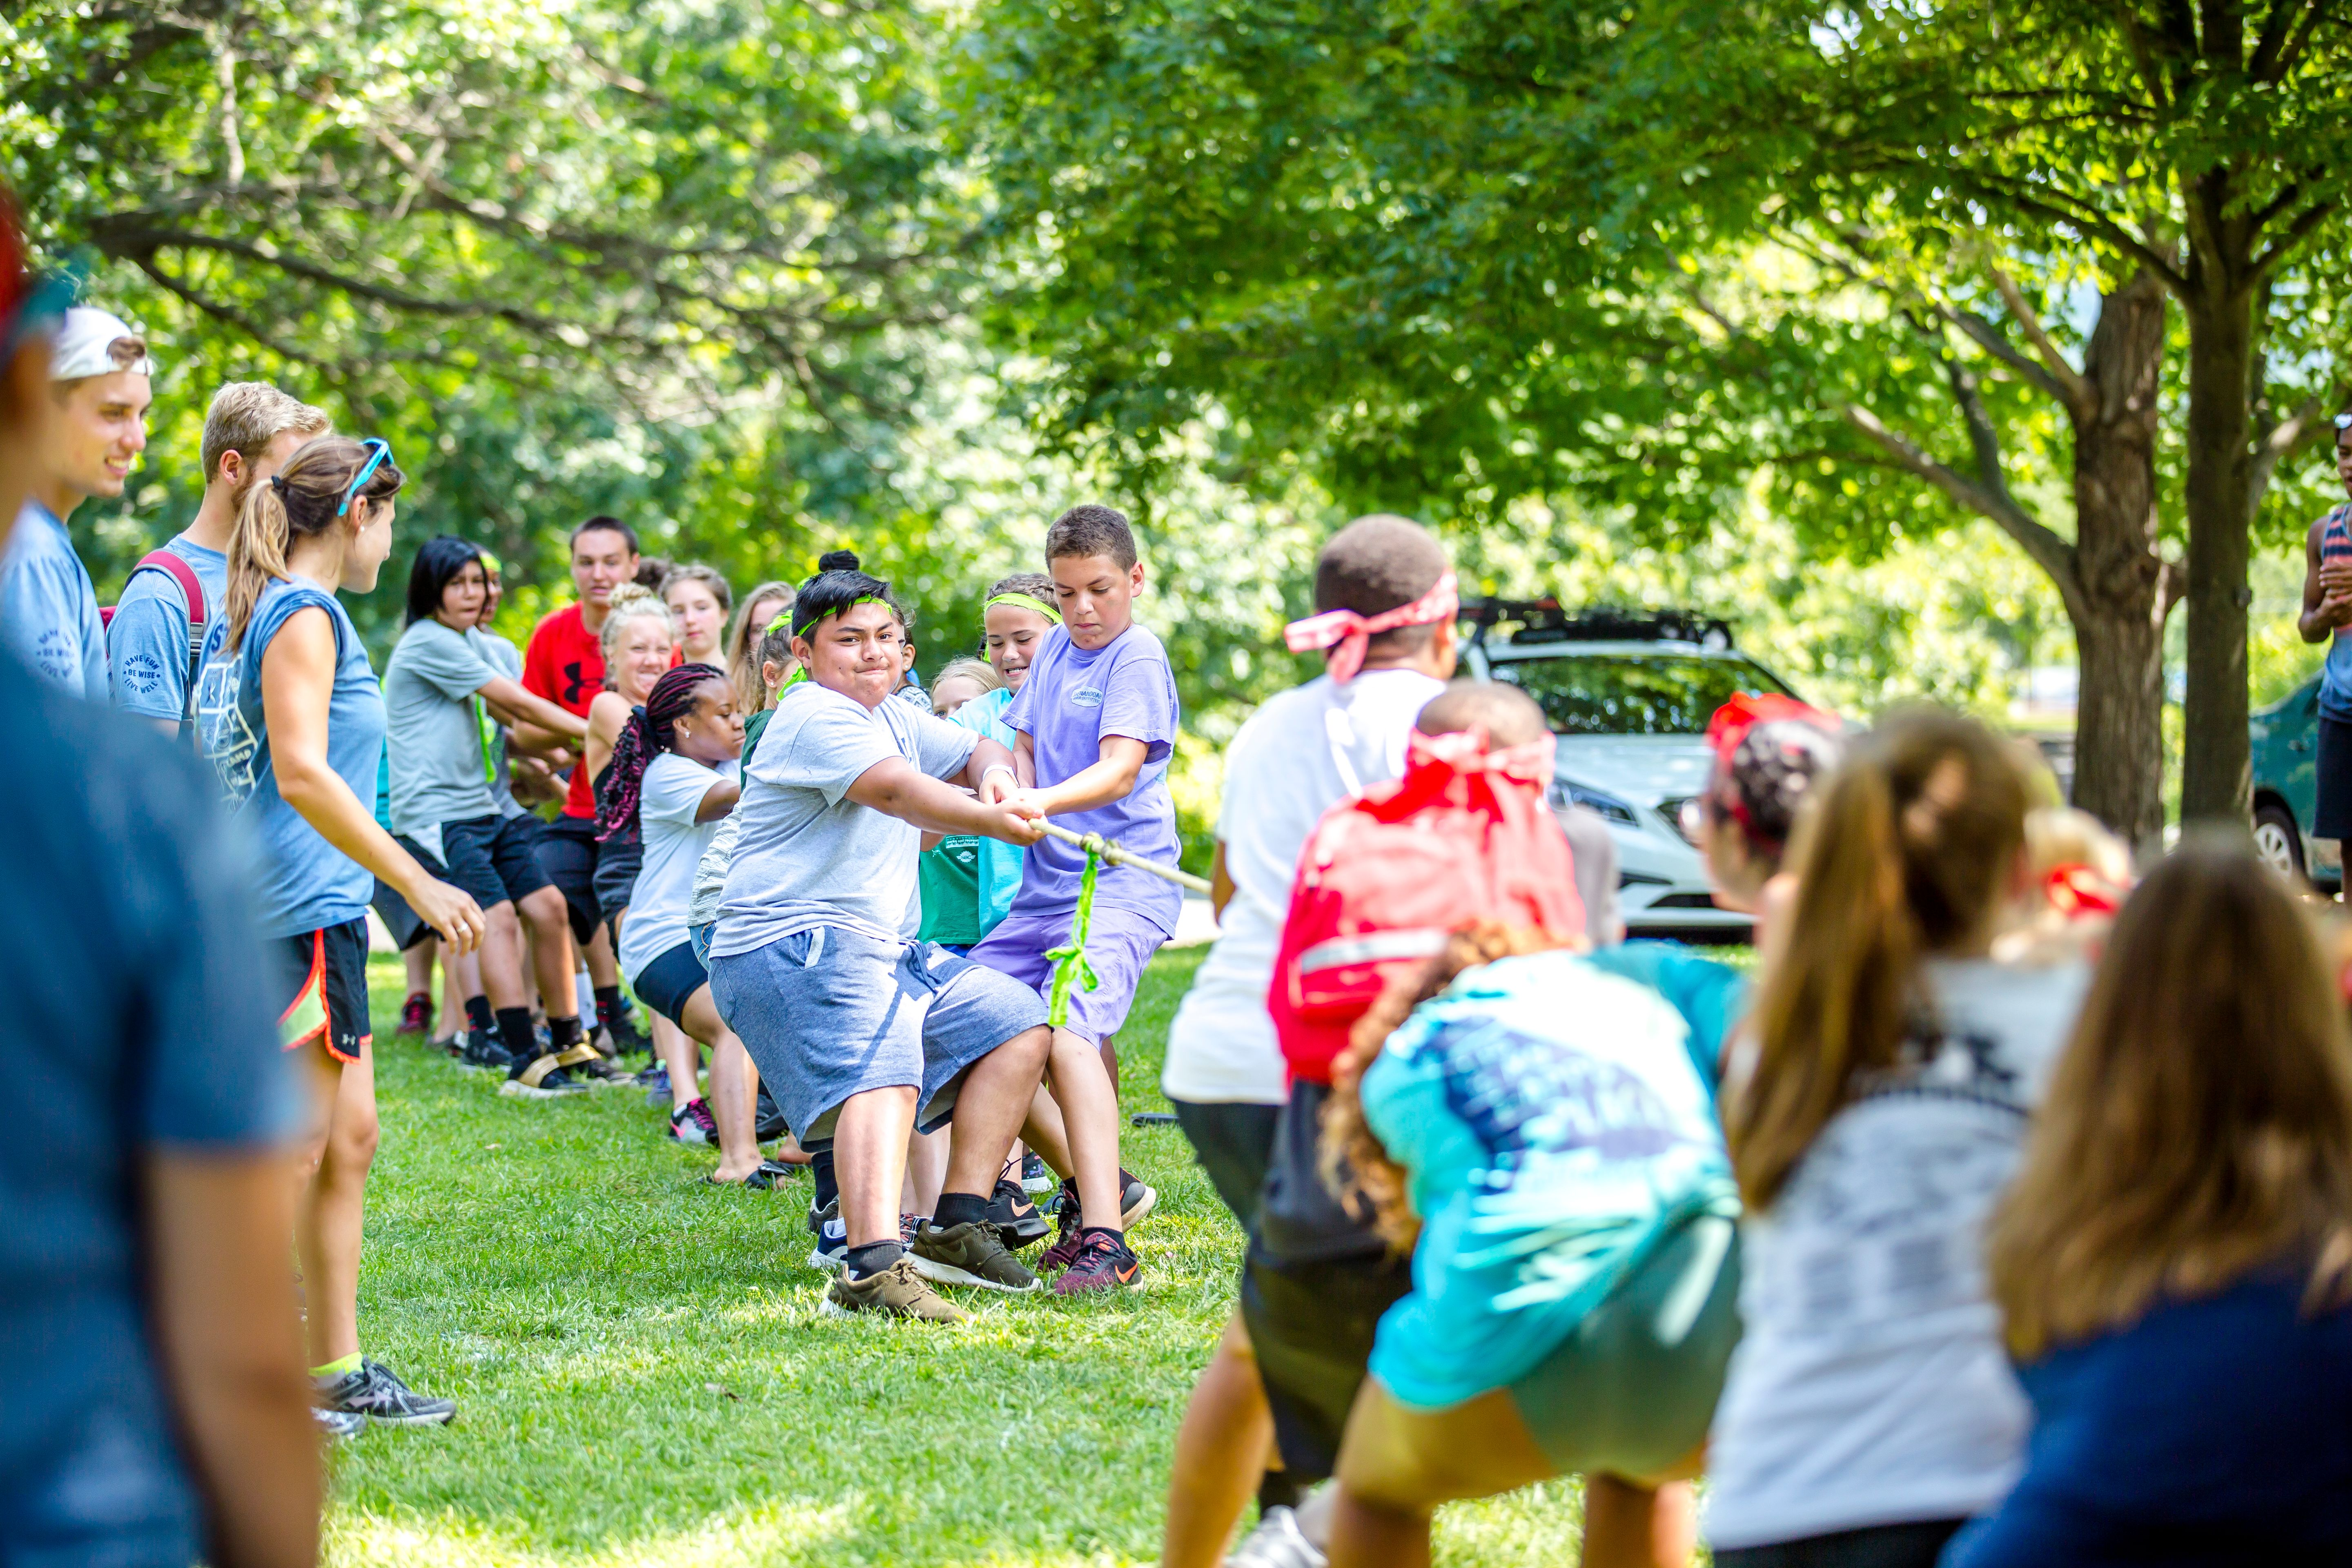 Campers play tug-of-war